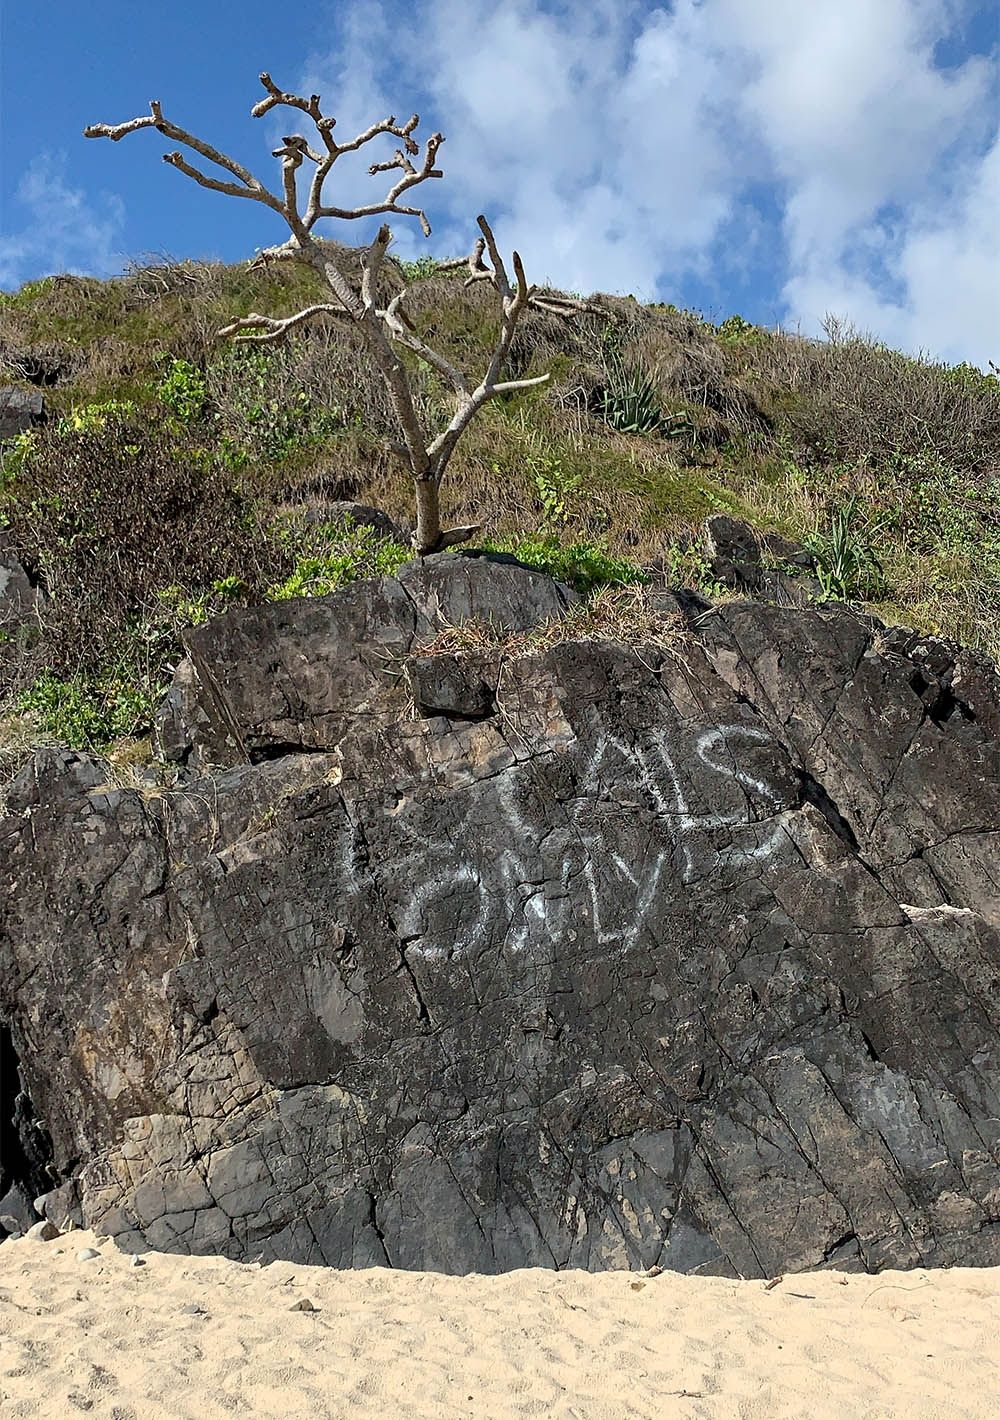 """A rock formation on the sand that has been spray painted with """"Locals Only"""""""